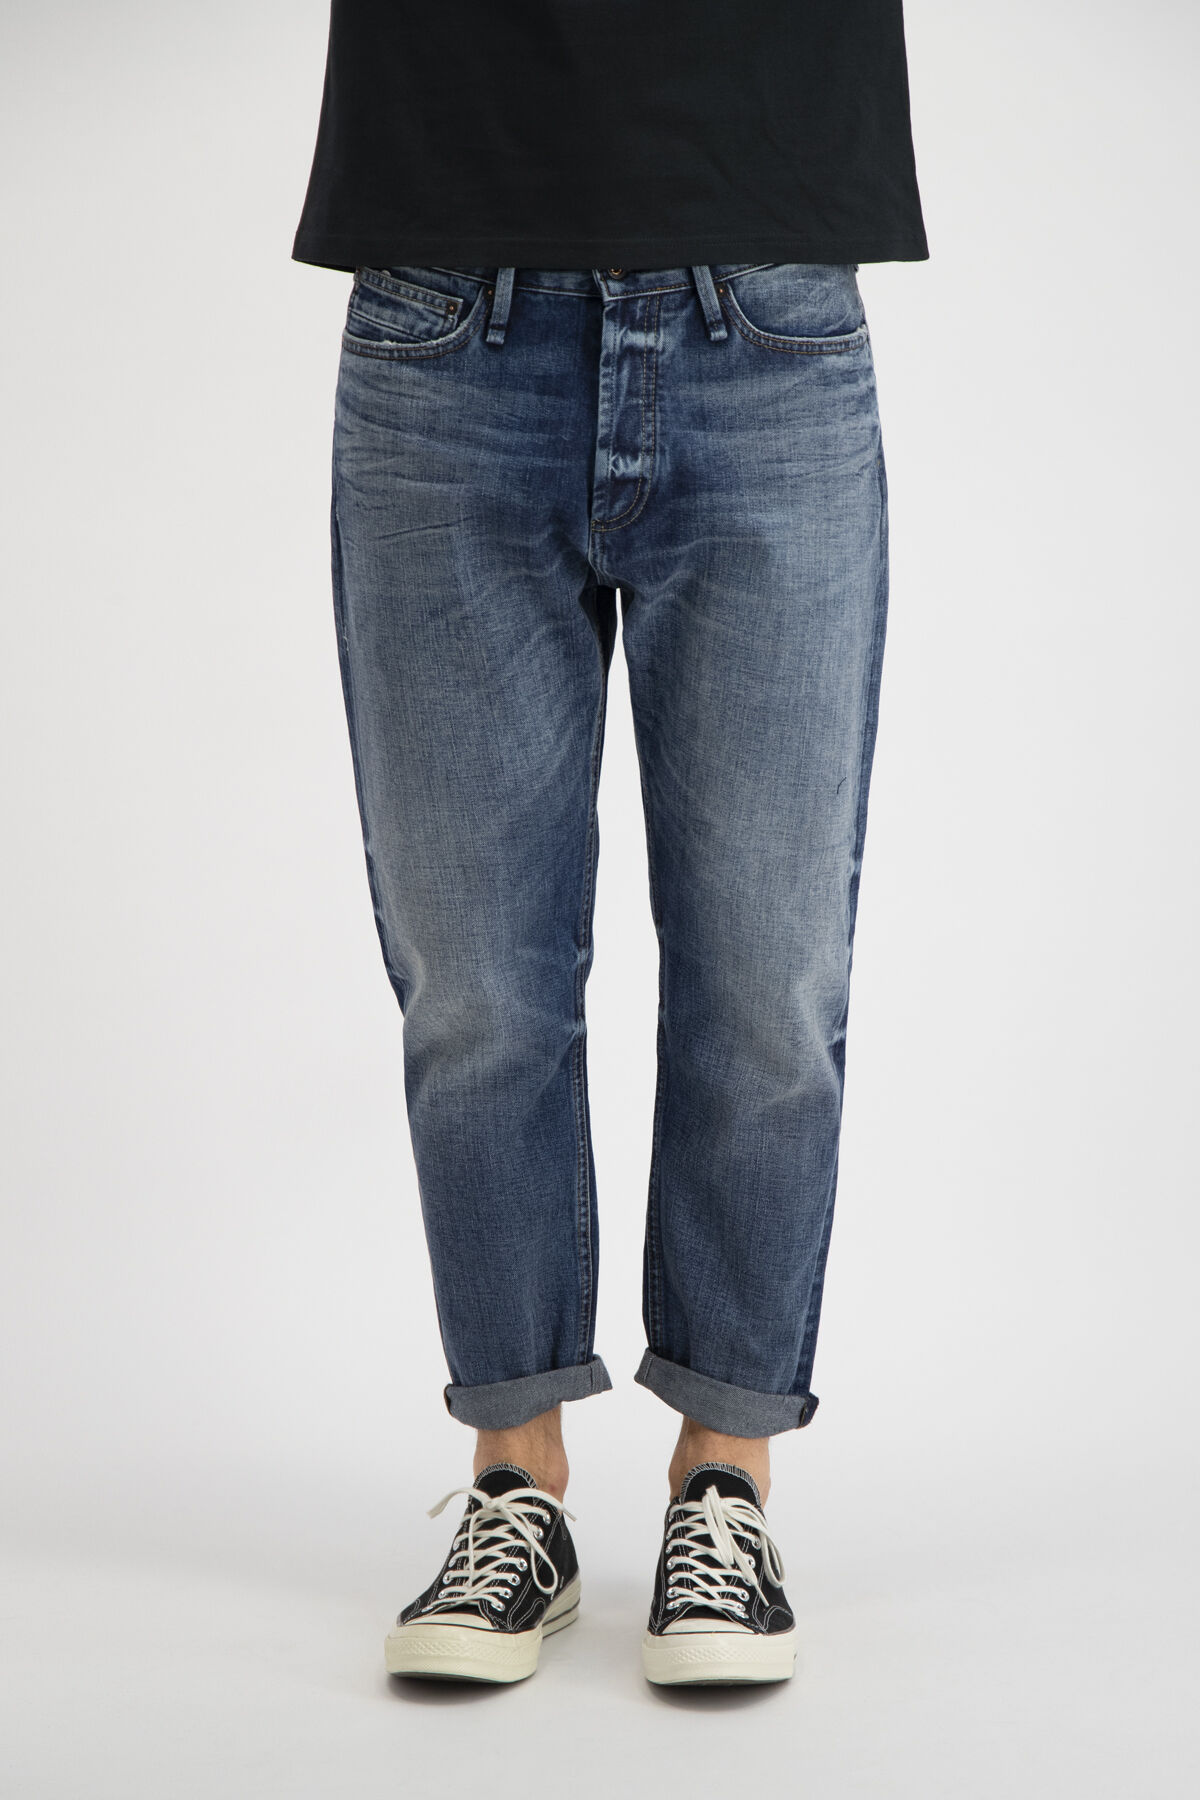 CROP Natural Faded Indigo Denim - Low Crotch, Cropped Fit